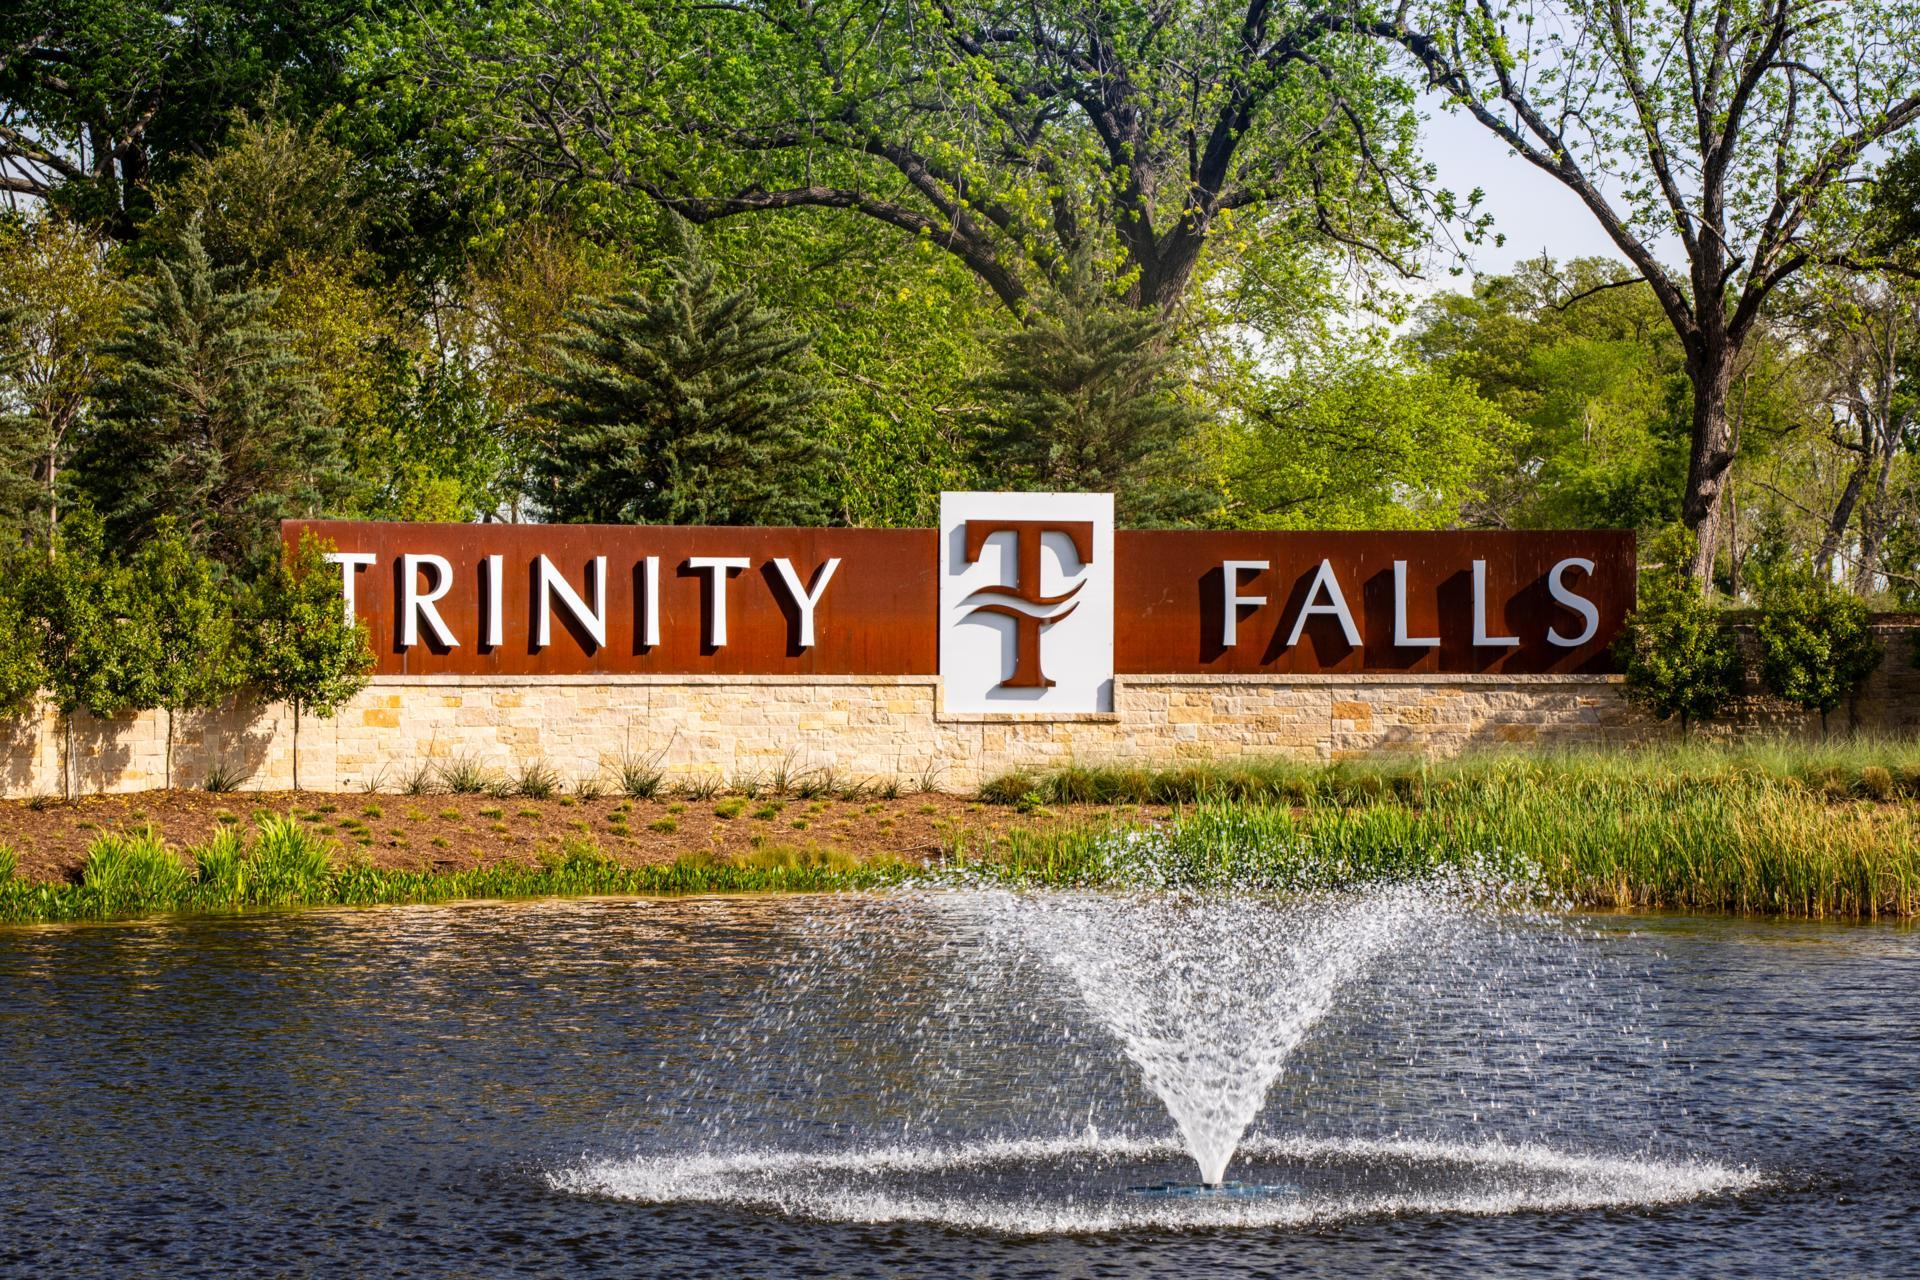 The Trinity Falls Entrance Monument